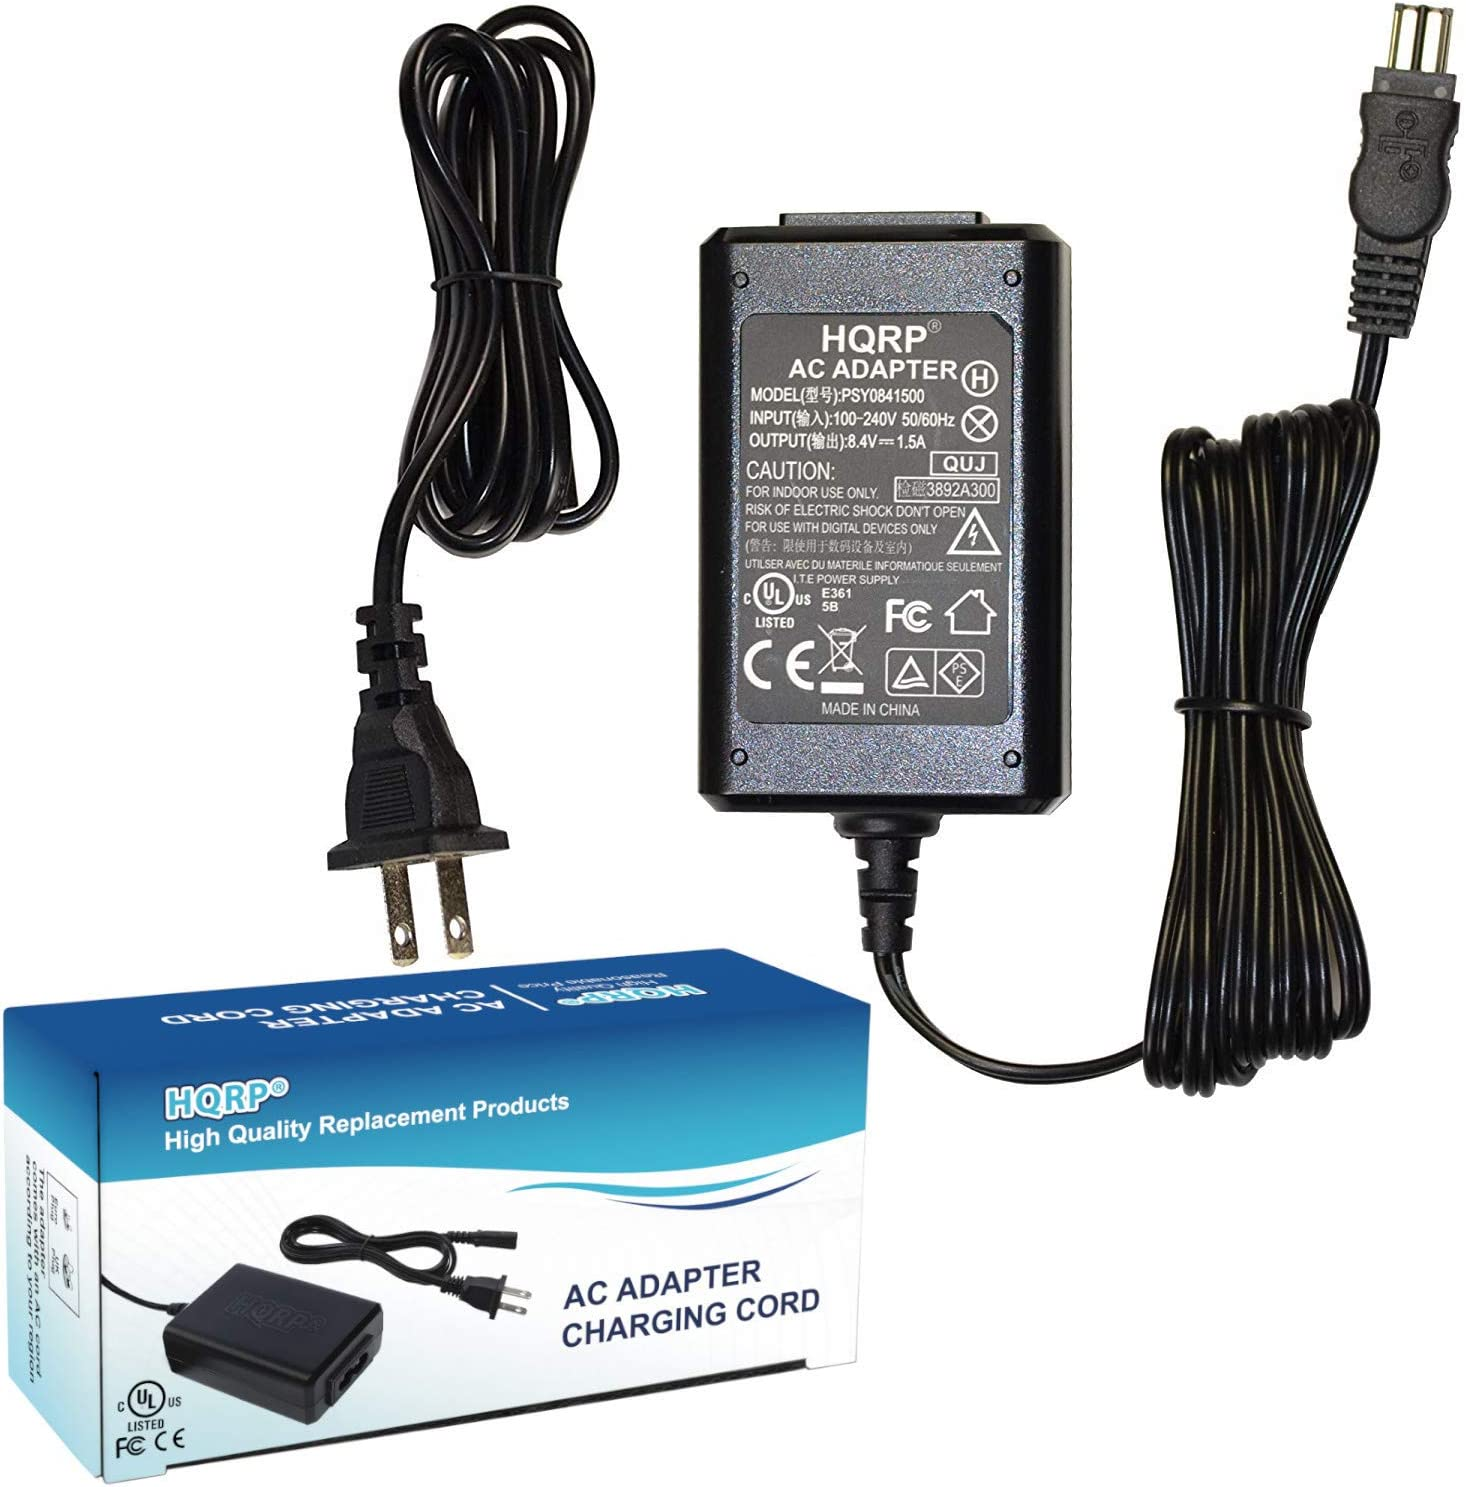 CCD-TRV128E AC Adapter Power Supply for Sony CCD-TRV107E CCD-TRV118E CCD-TRV108E CCD-TRV138E Handycam Camcorder